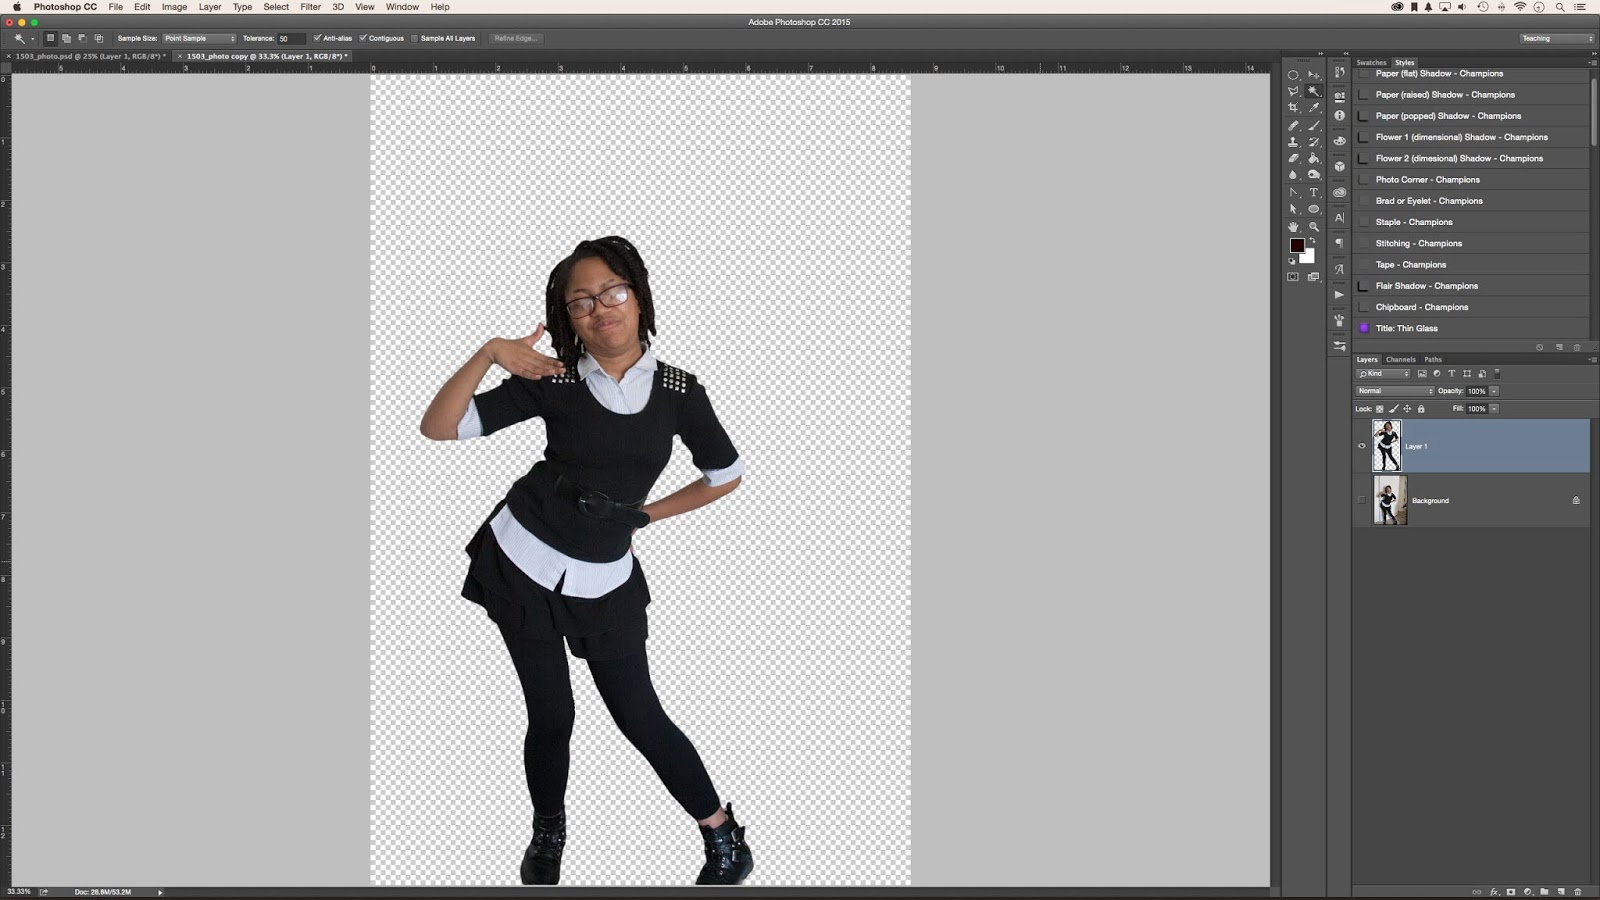 How to remove the image background in photoshop